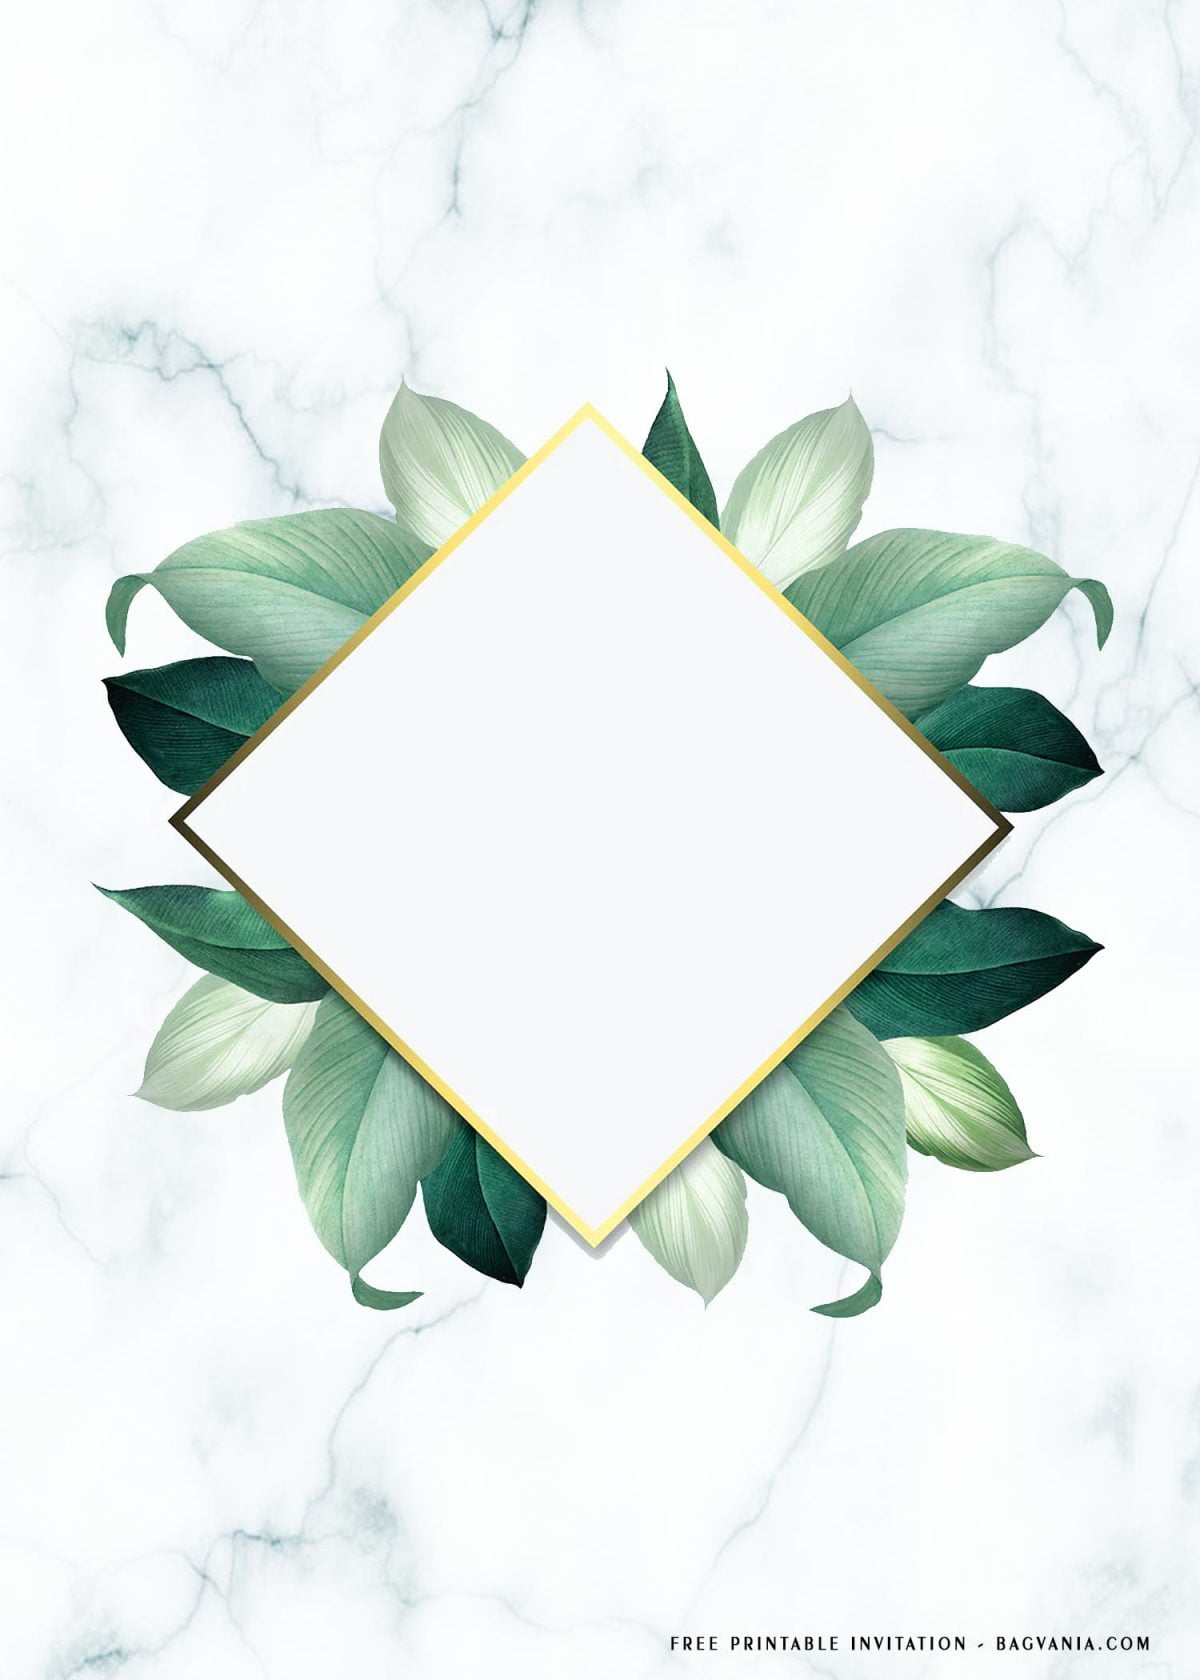 Free Printable Leafy Frame Birthday Invitation Templates With White Marble Background